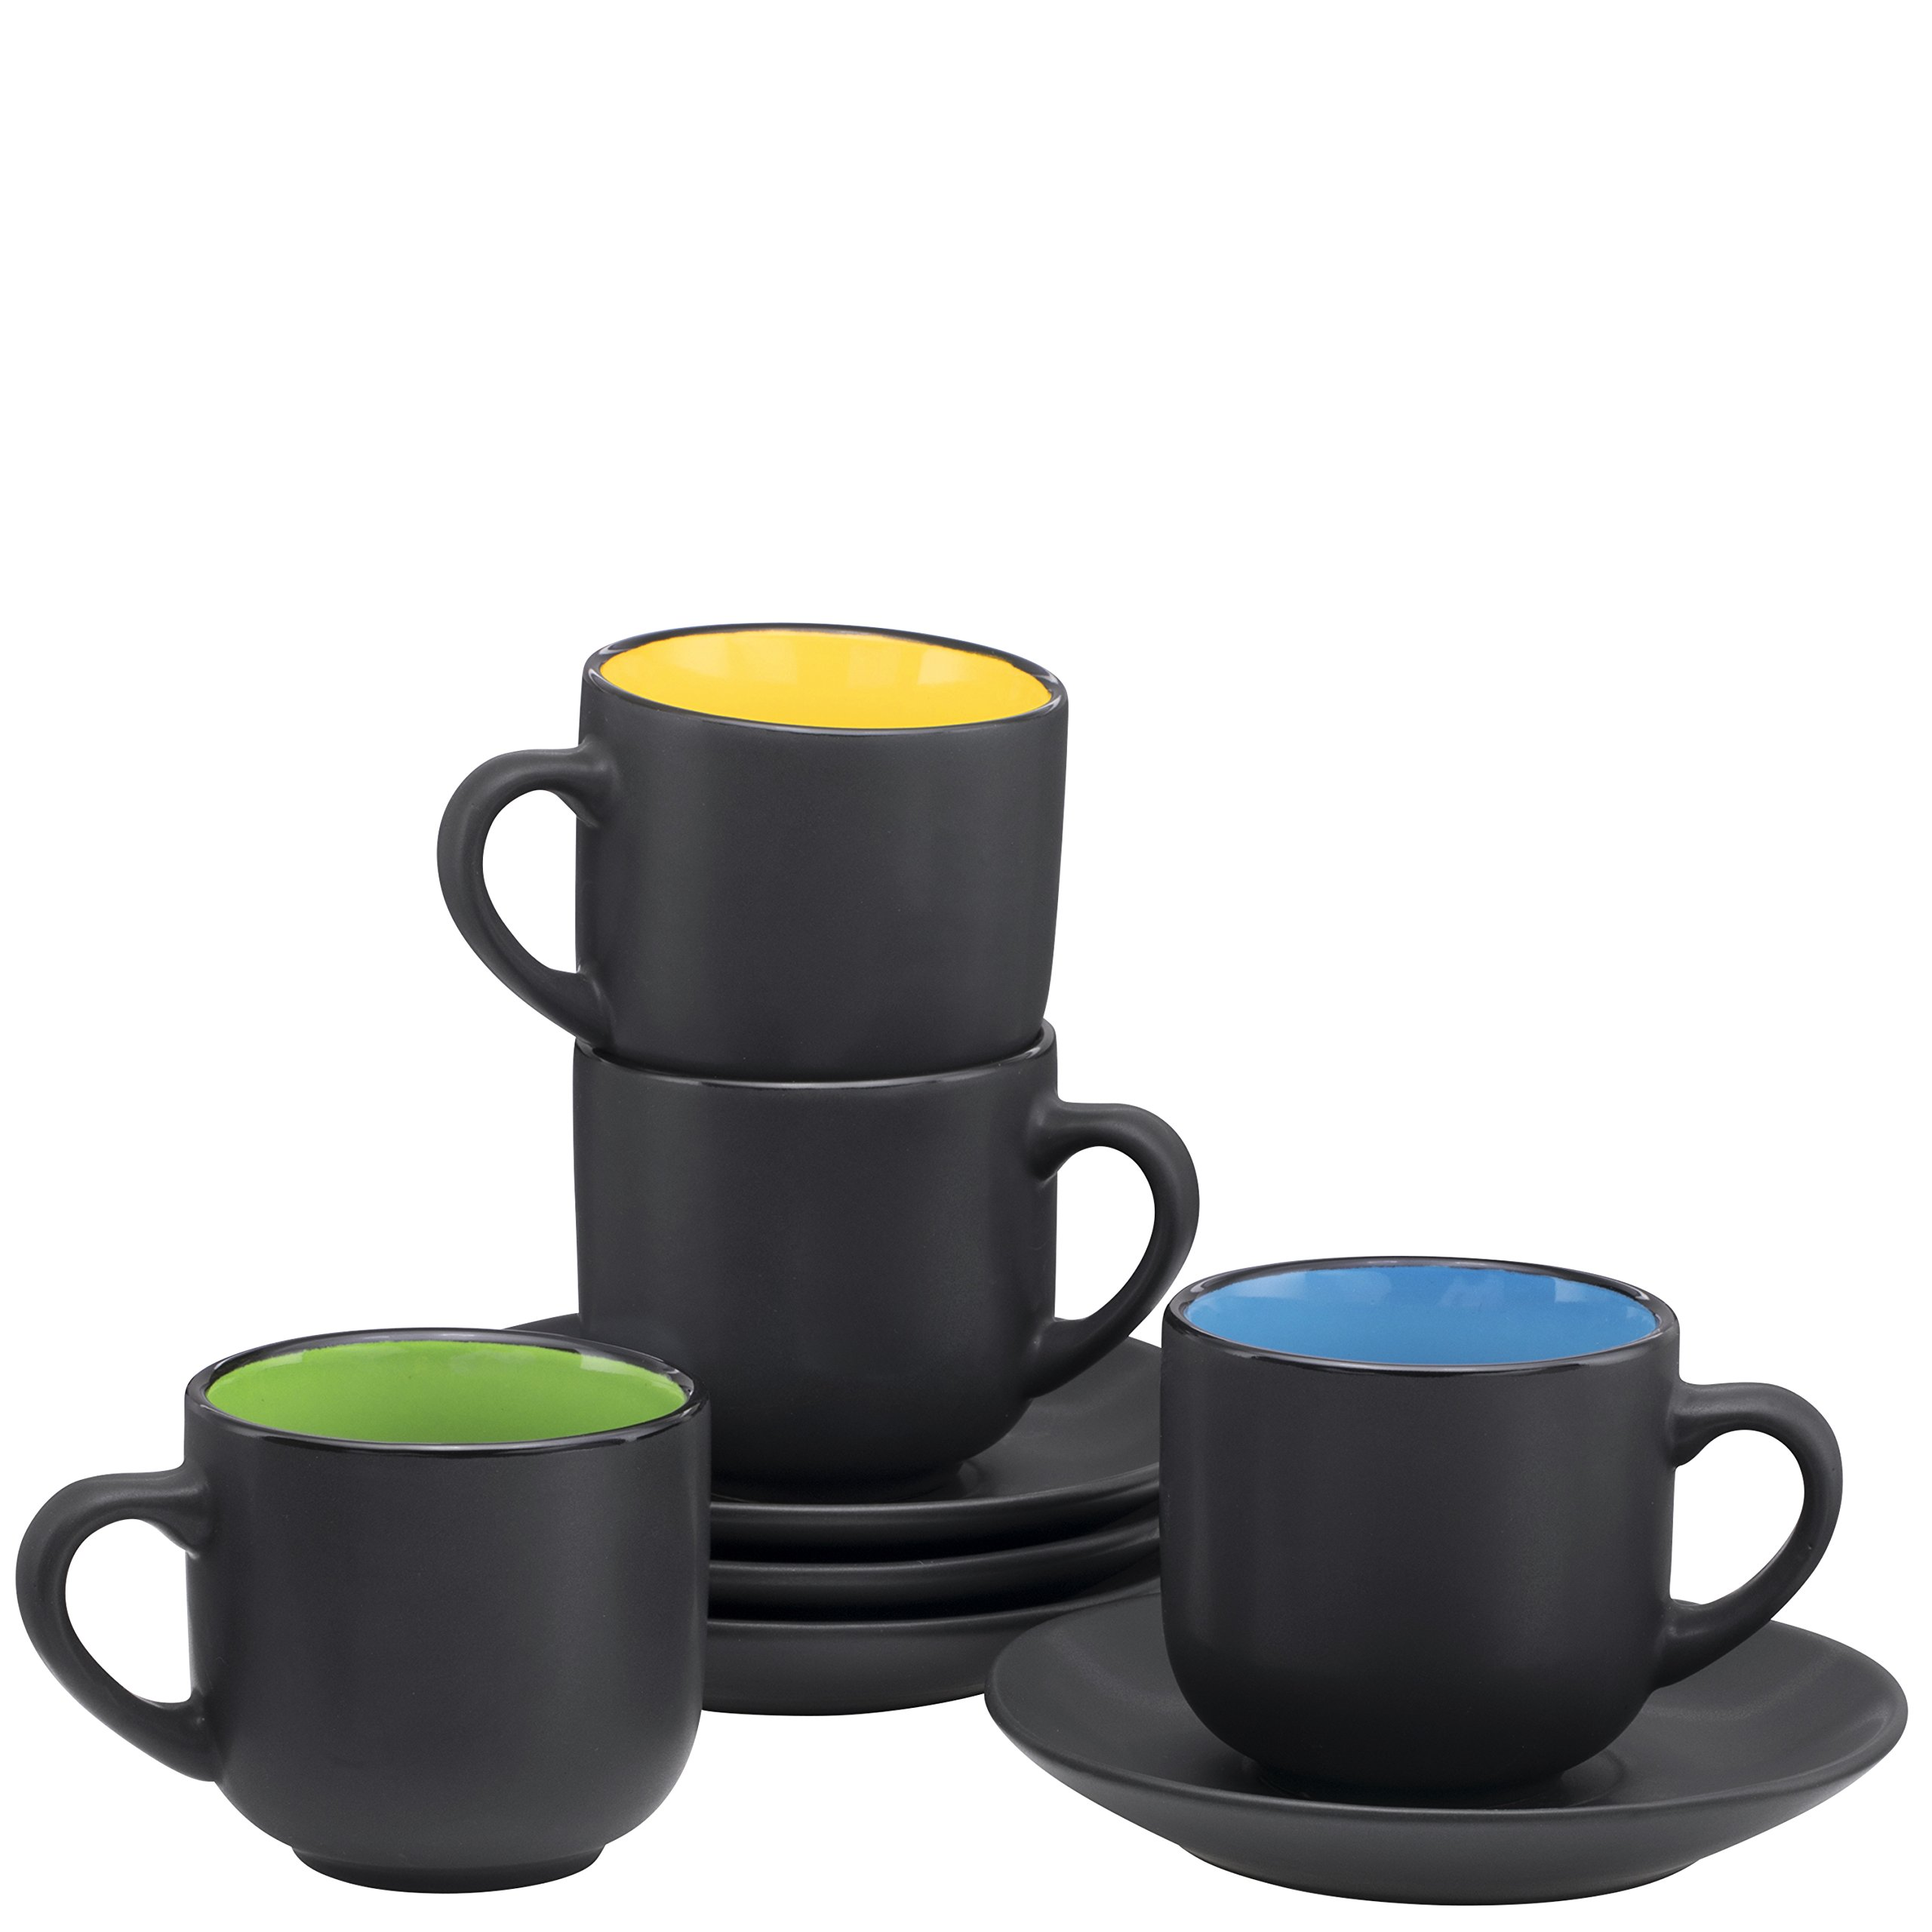 Espresso Cups with Saucers by Bruntmor - 4 ounce - Matte Black Exterior, Solid Color Interior - Set of 4 by Bruntmor (Image #1)